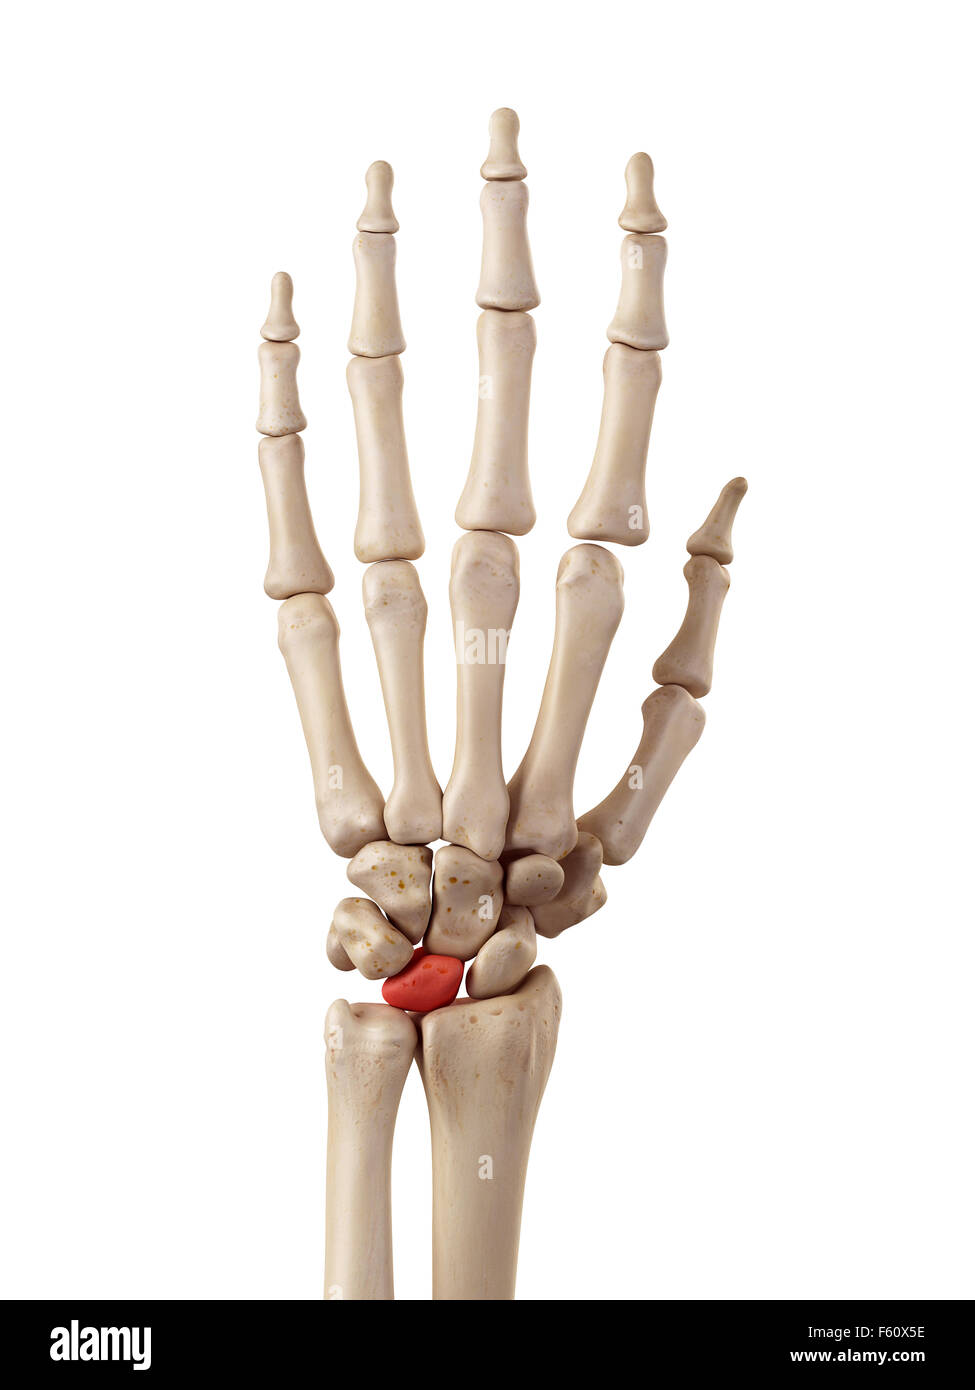 medical accurate illustration of the lunate bone - Stock Image